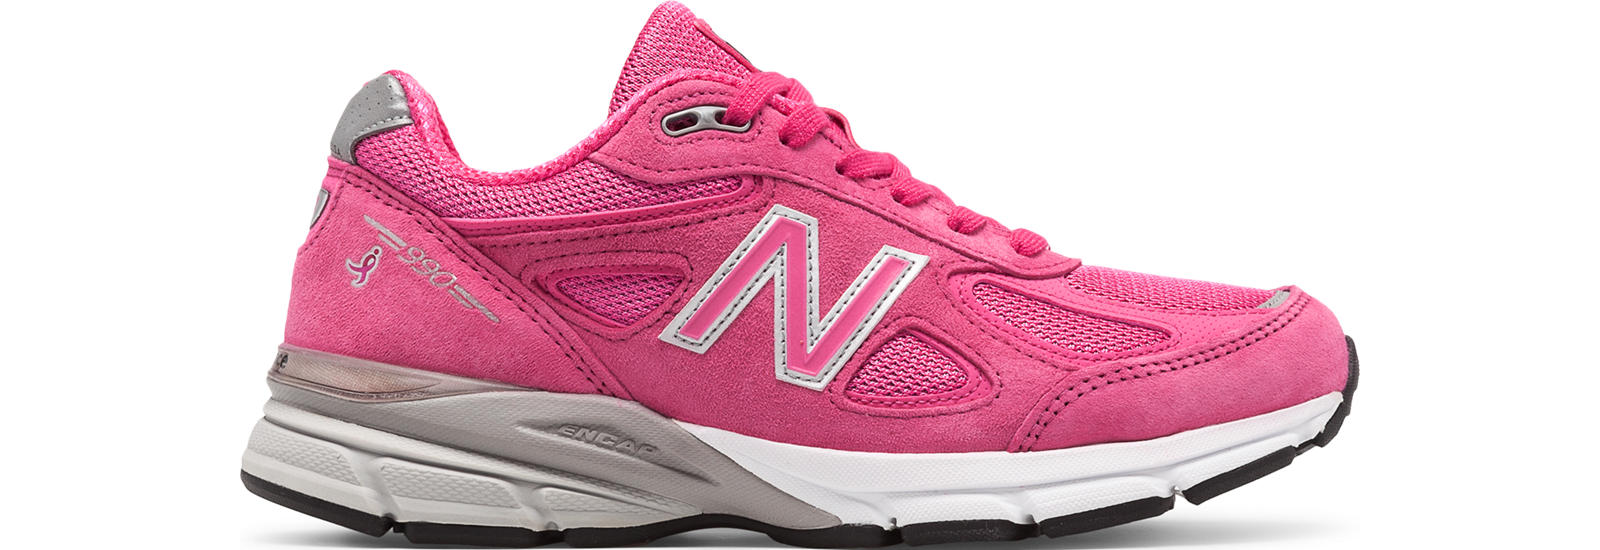 Womens 990v4 Made in US Pink Ribbon